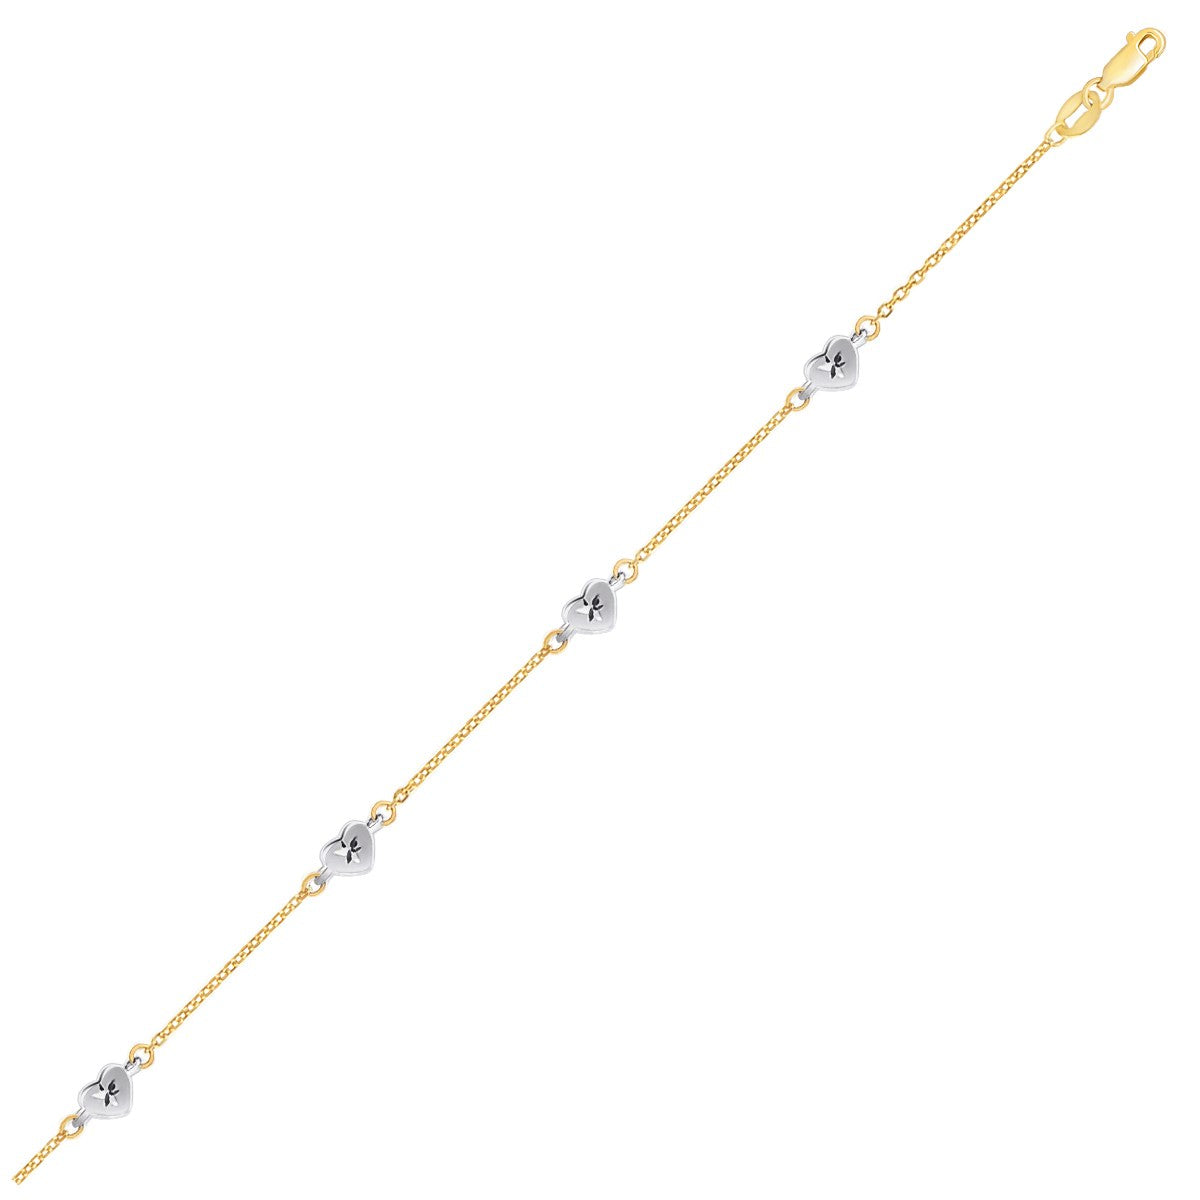 14K Two Tone Gold Anklet with Diamond Cut Heart Style Stations - Uniquepedia.com